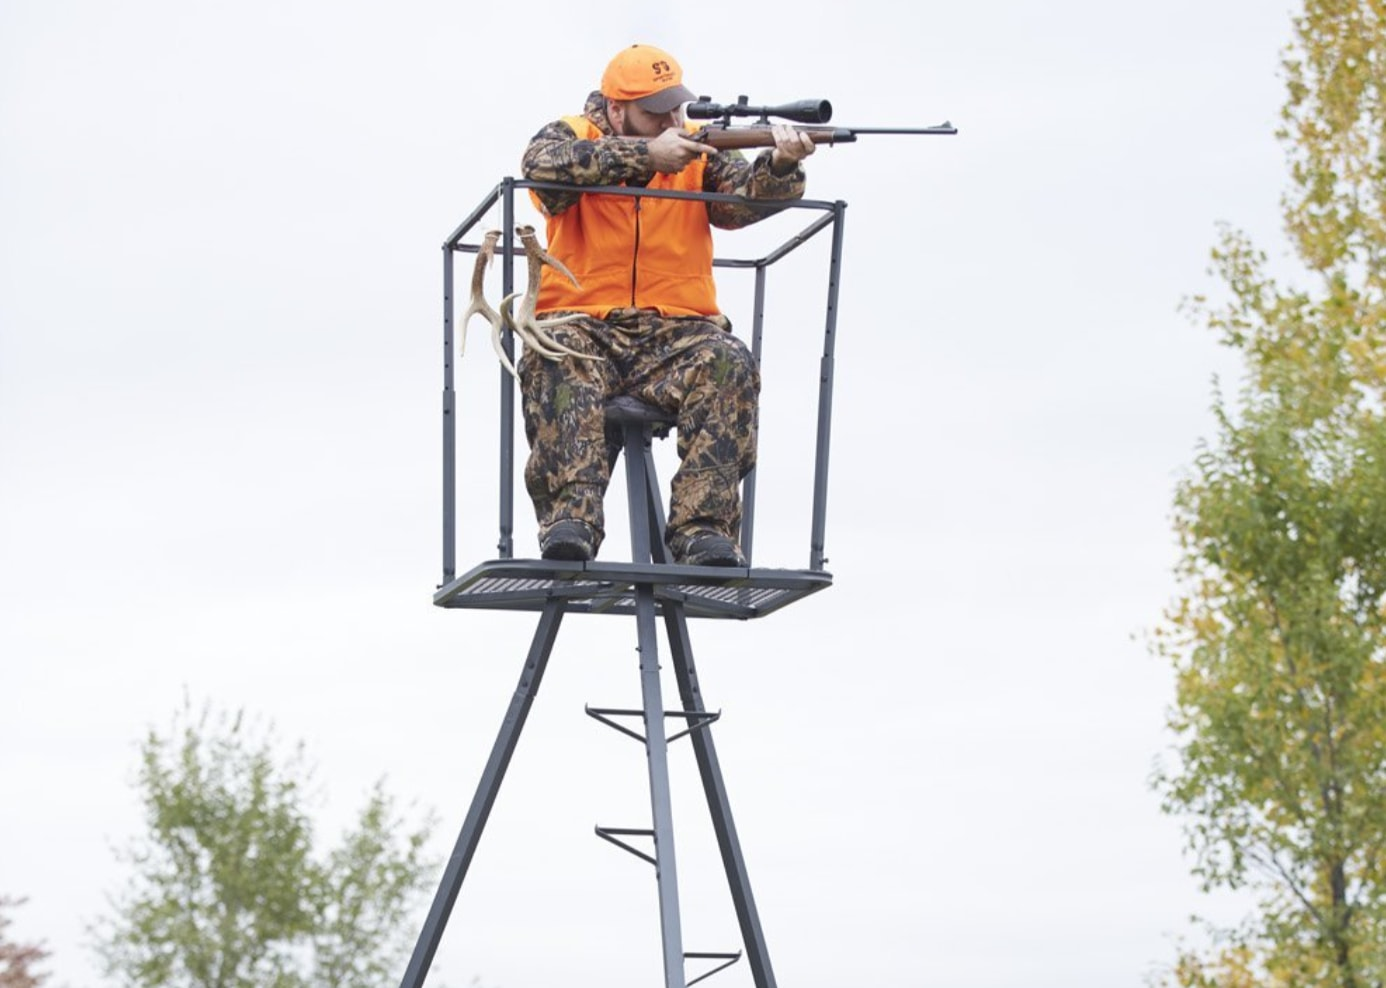 high chair deer stand chairs with casters top 5 best tripod stands for and bow hunting tripodyssey guide gear 13 deluxe editors pick